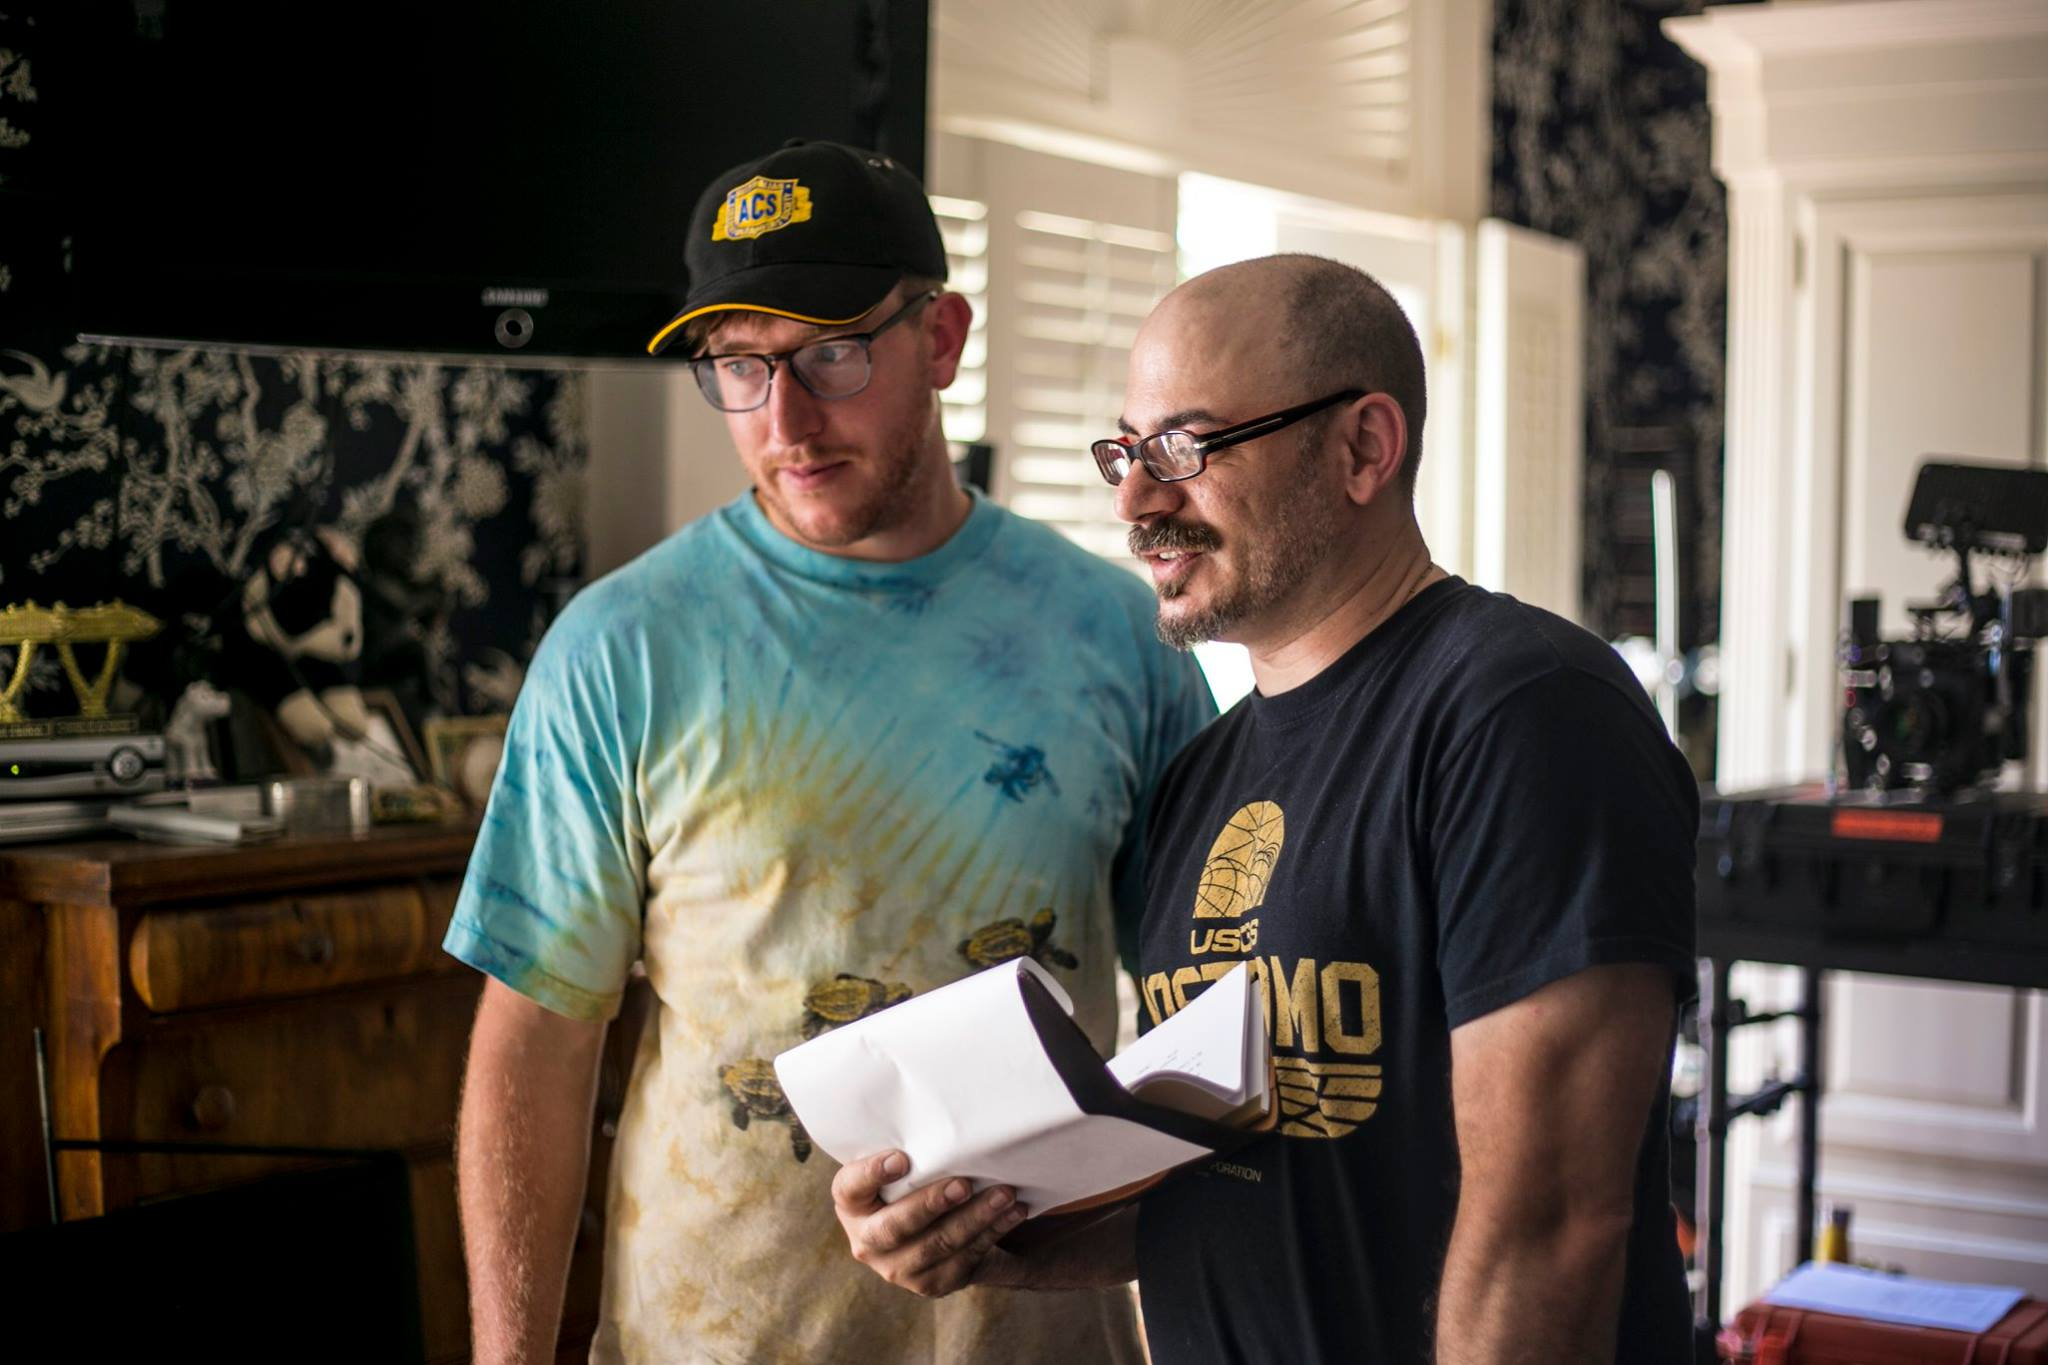 Pascal Combes-Knoke and Jason Ragosta on the set of UH OH Music Video |  Courtesy of Olivia Riportella